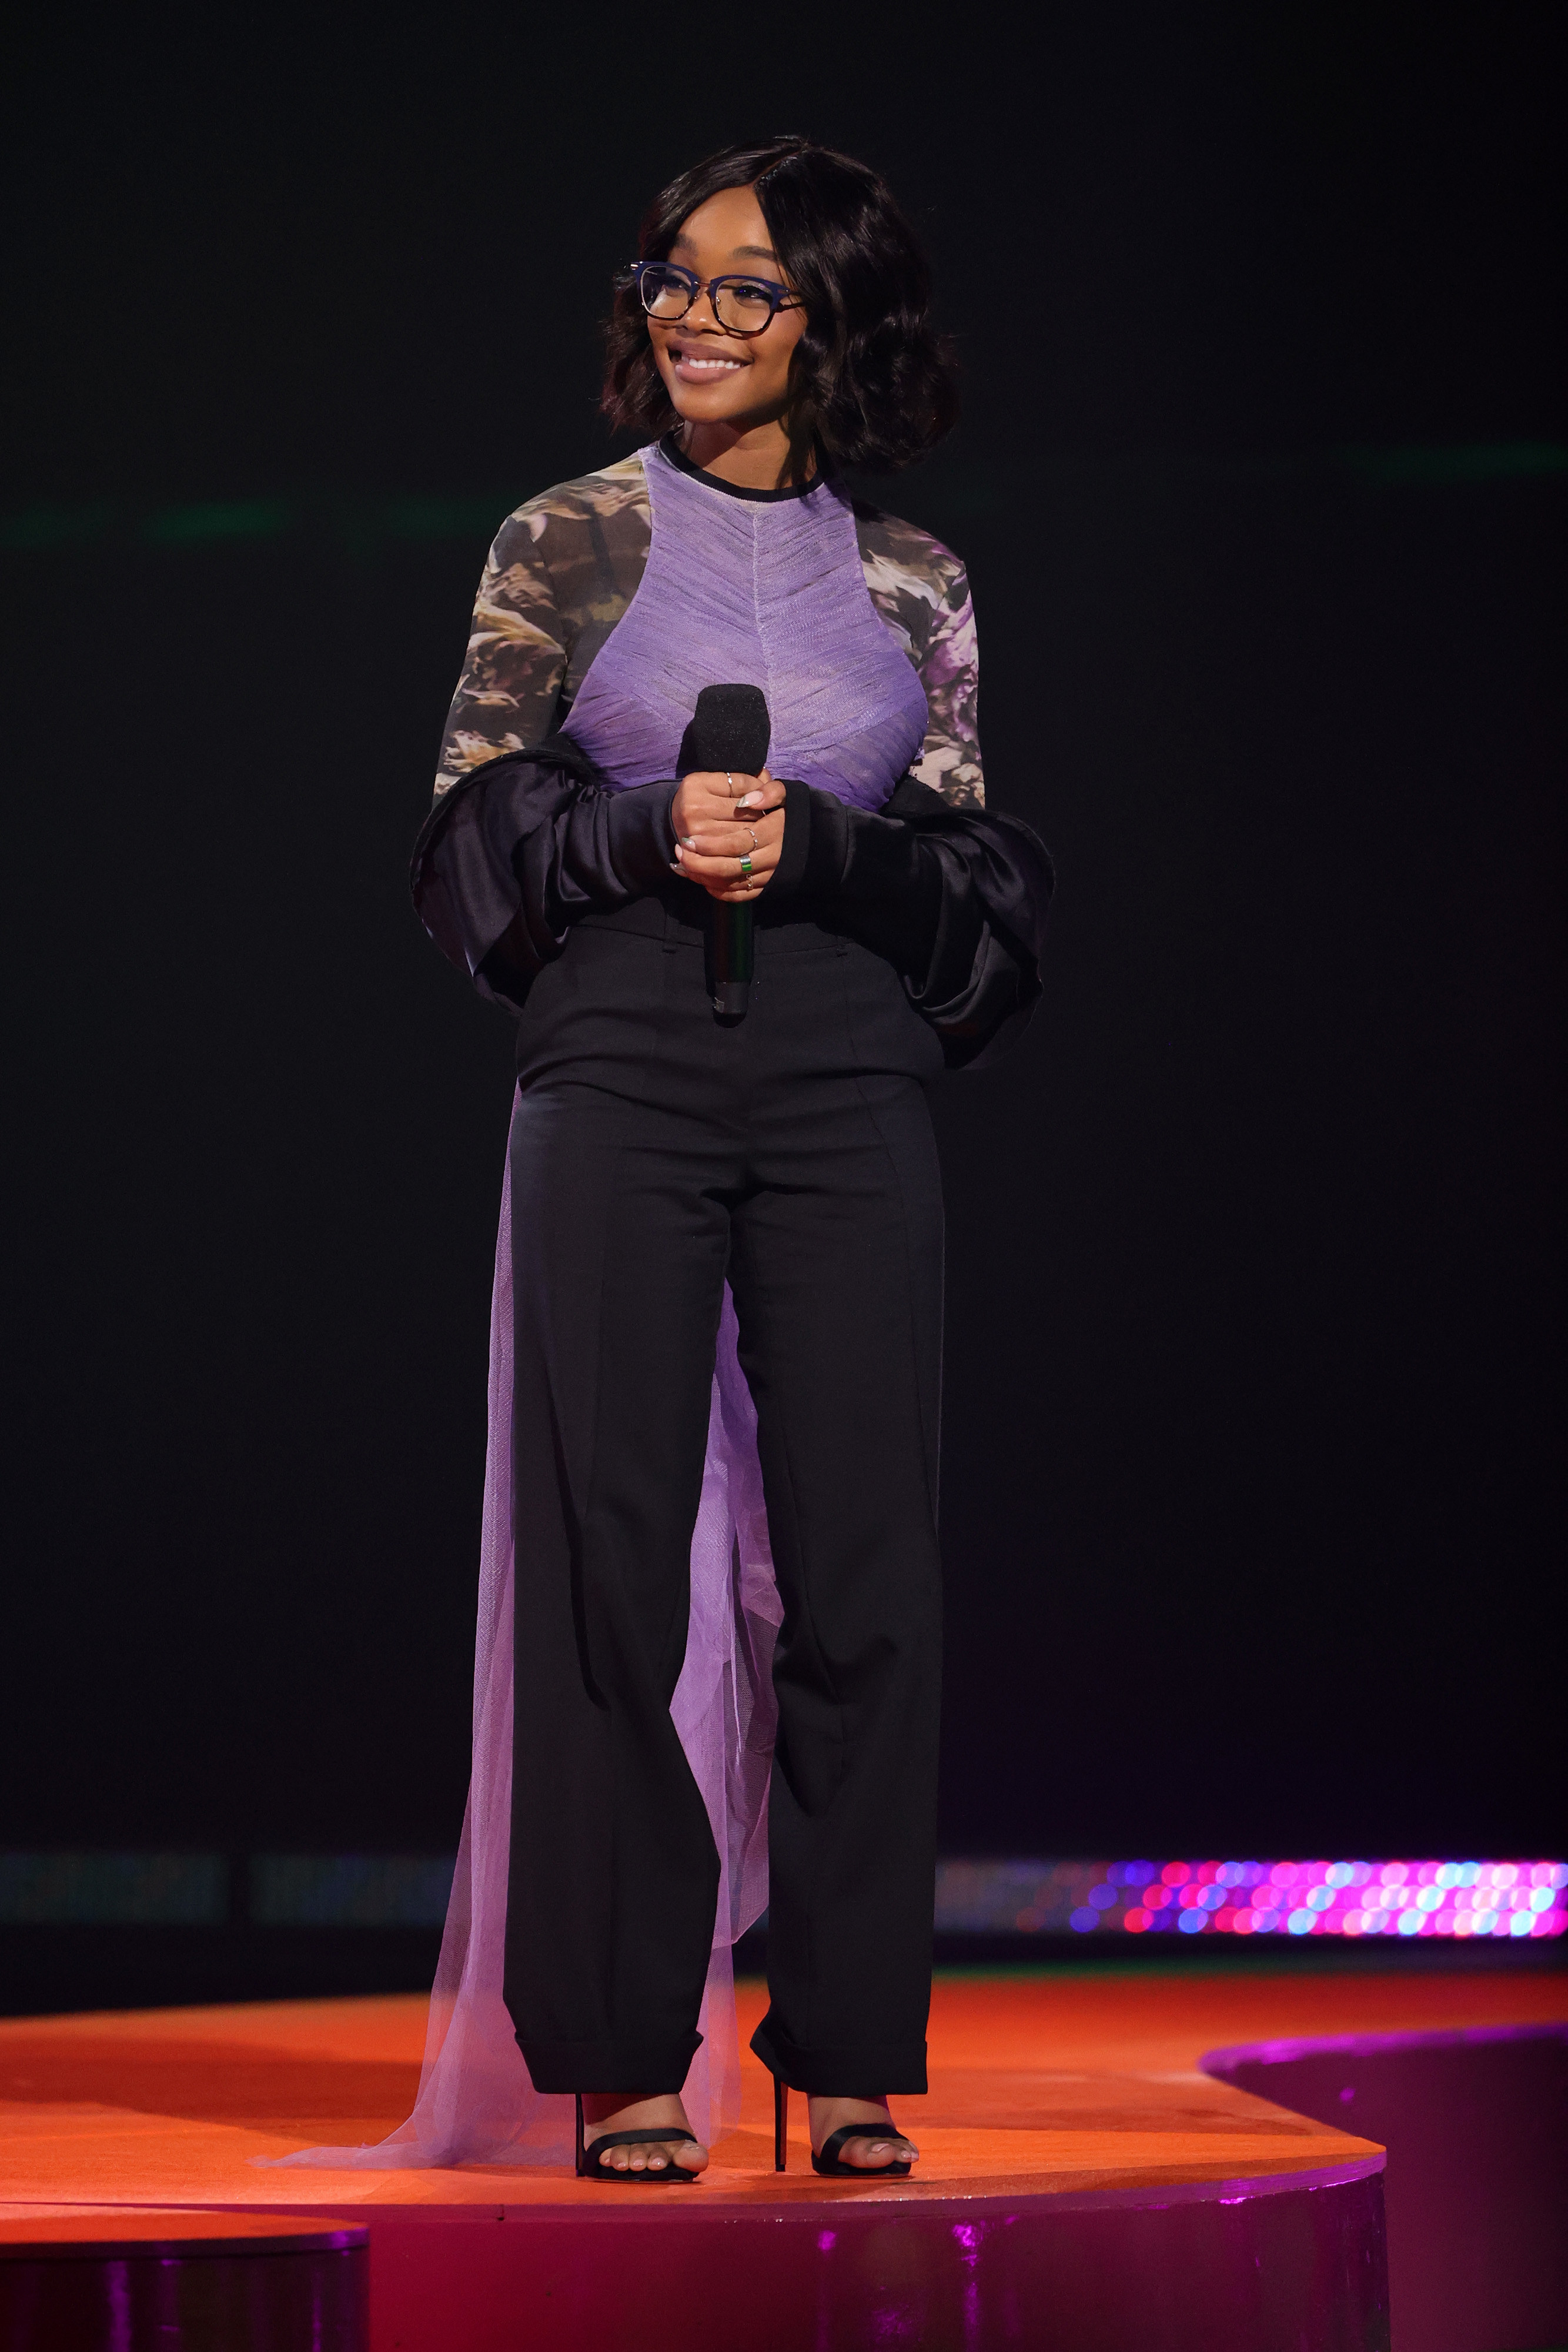 Bespectacled Marsai smiling and wearing high heels, black pants, and a top with flowy sleeves and a purple train